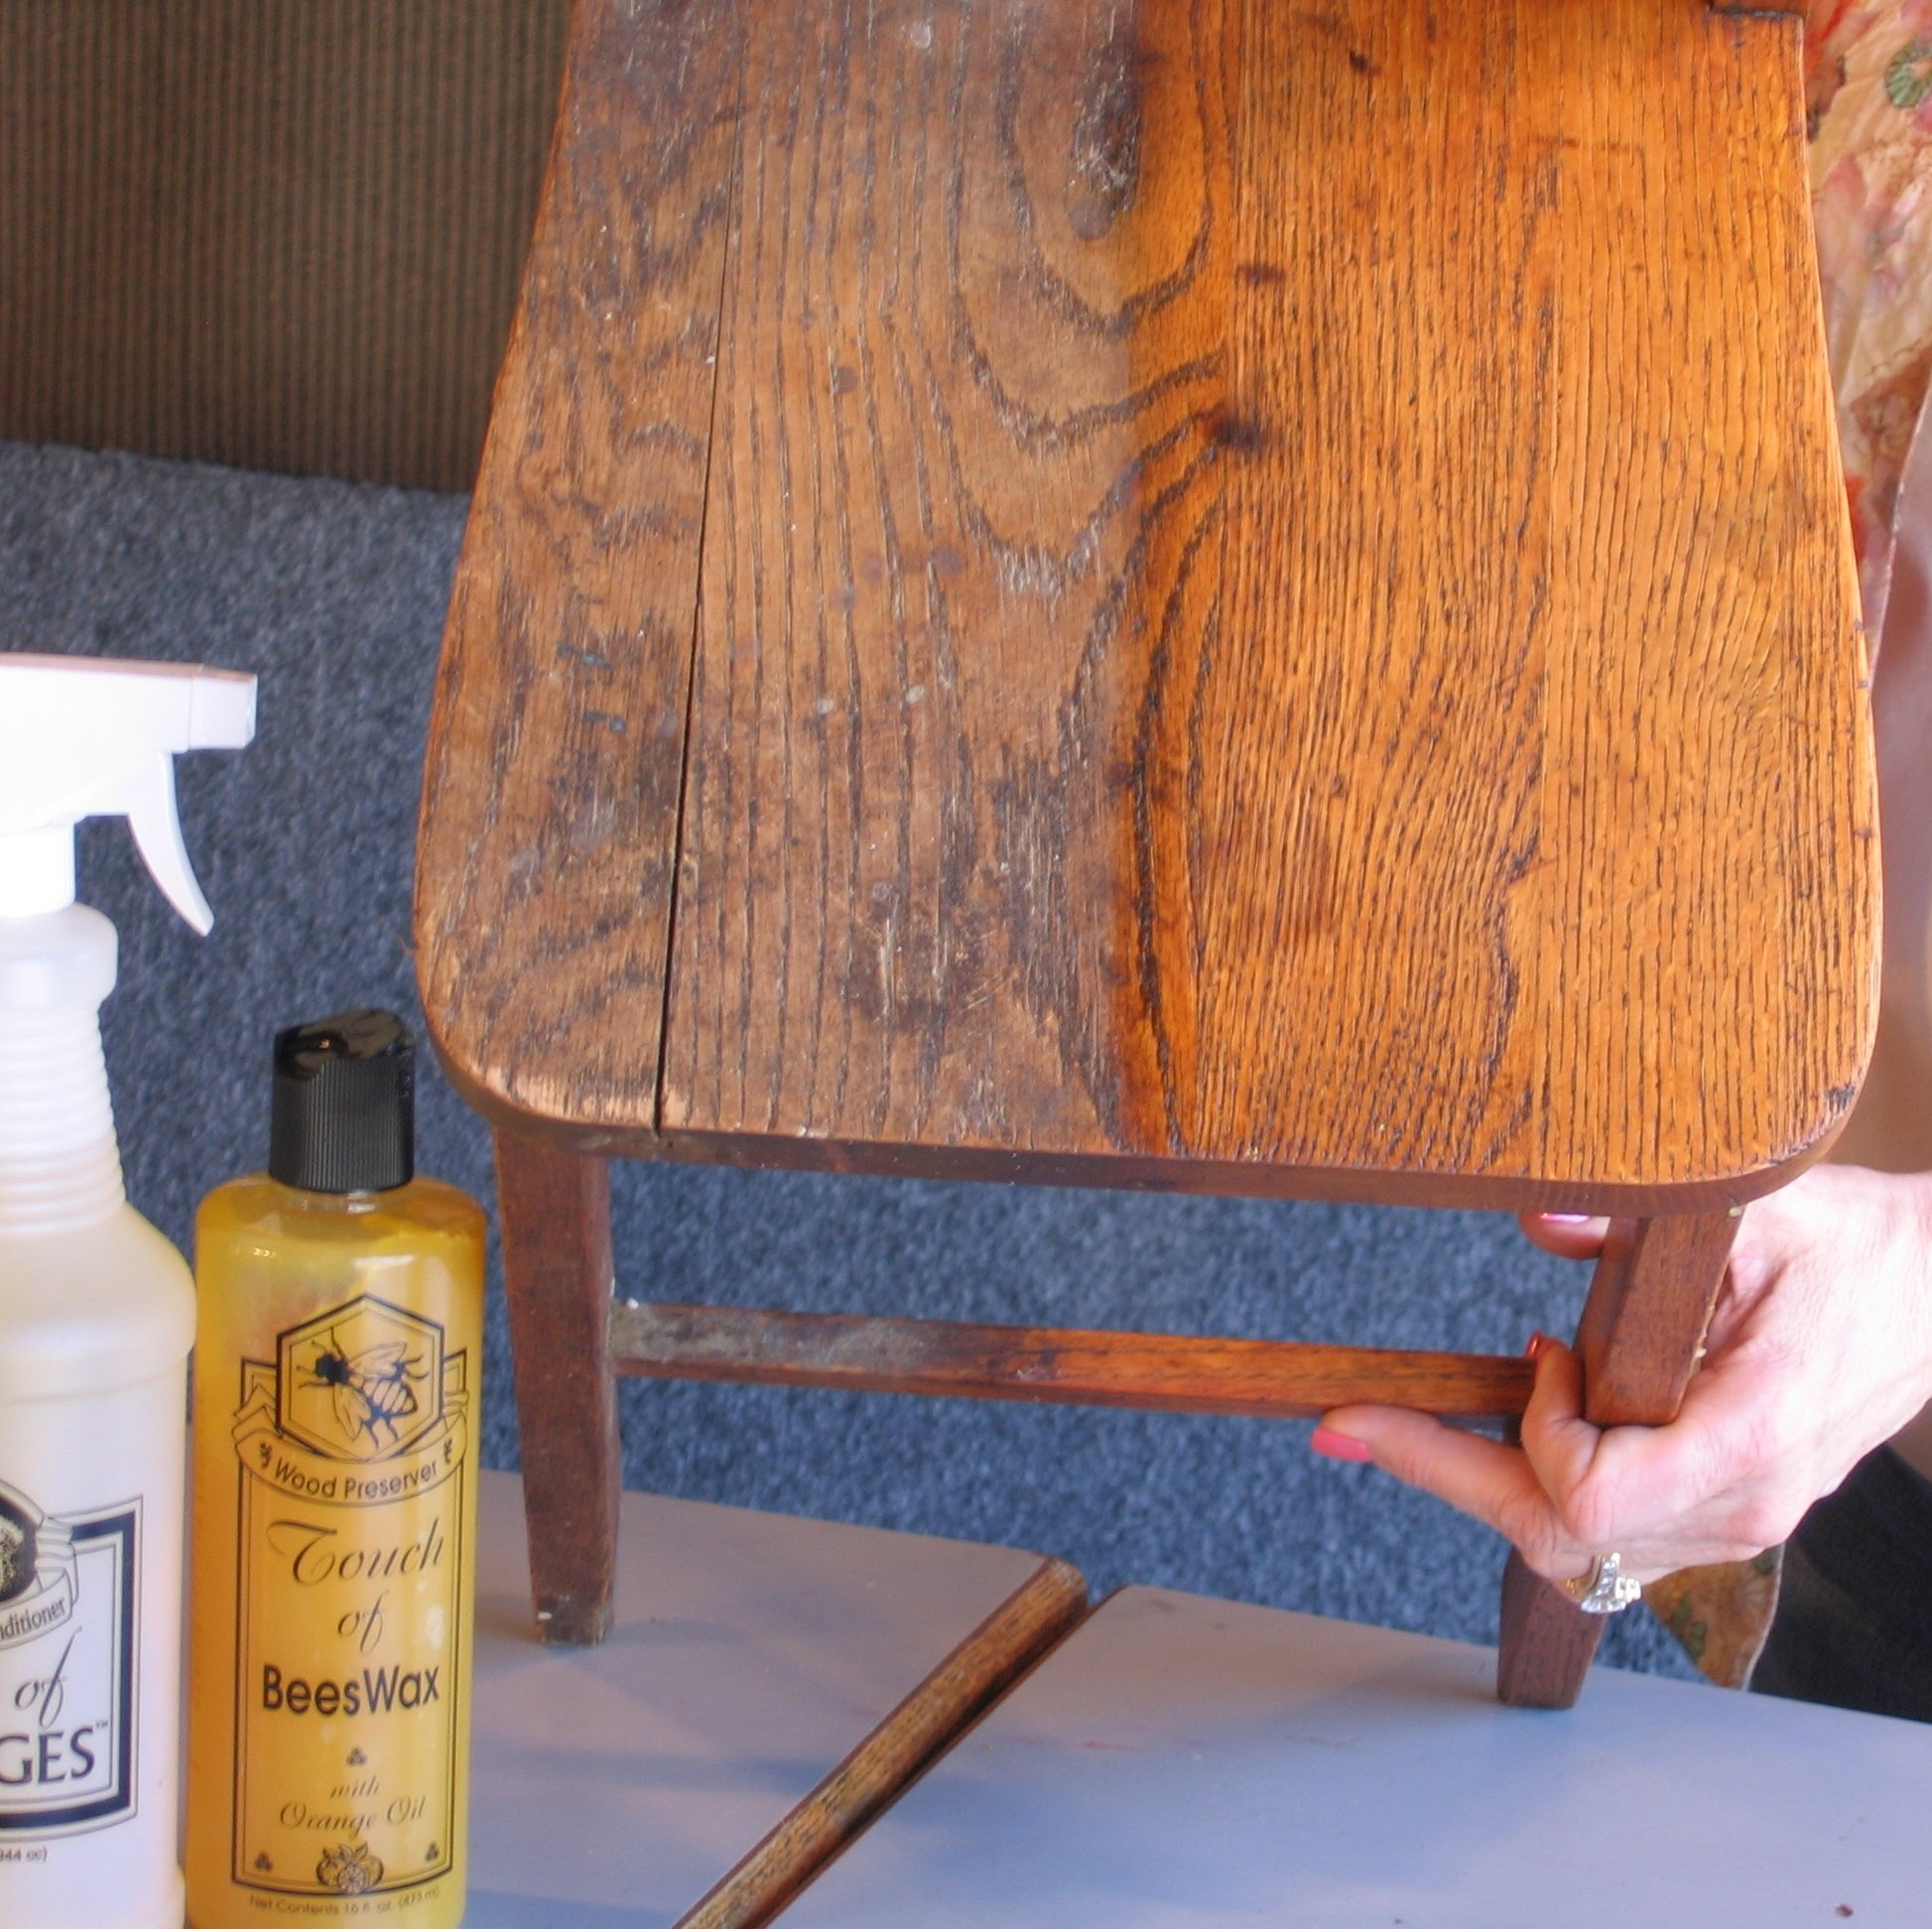 Complete Wood Restoration Kit, Wood Floor Restorer, Orange Oil Cleaner 32 oz, Beeswax Furniture Polish 16 oz, Restore A Finish 16 oz, Cover Scratches and Blemishes (Walnut) by Touch Of Oranges (Image #1)